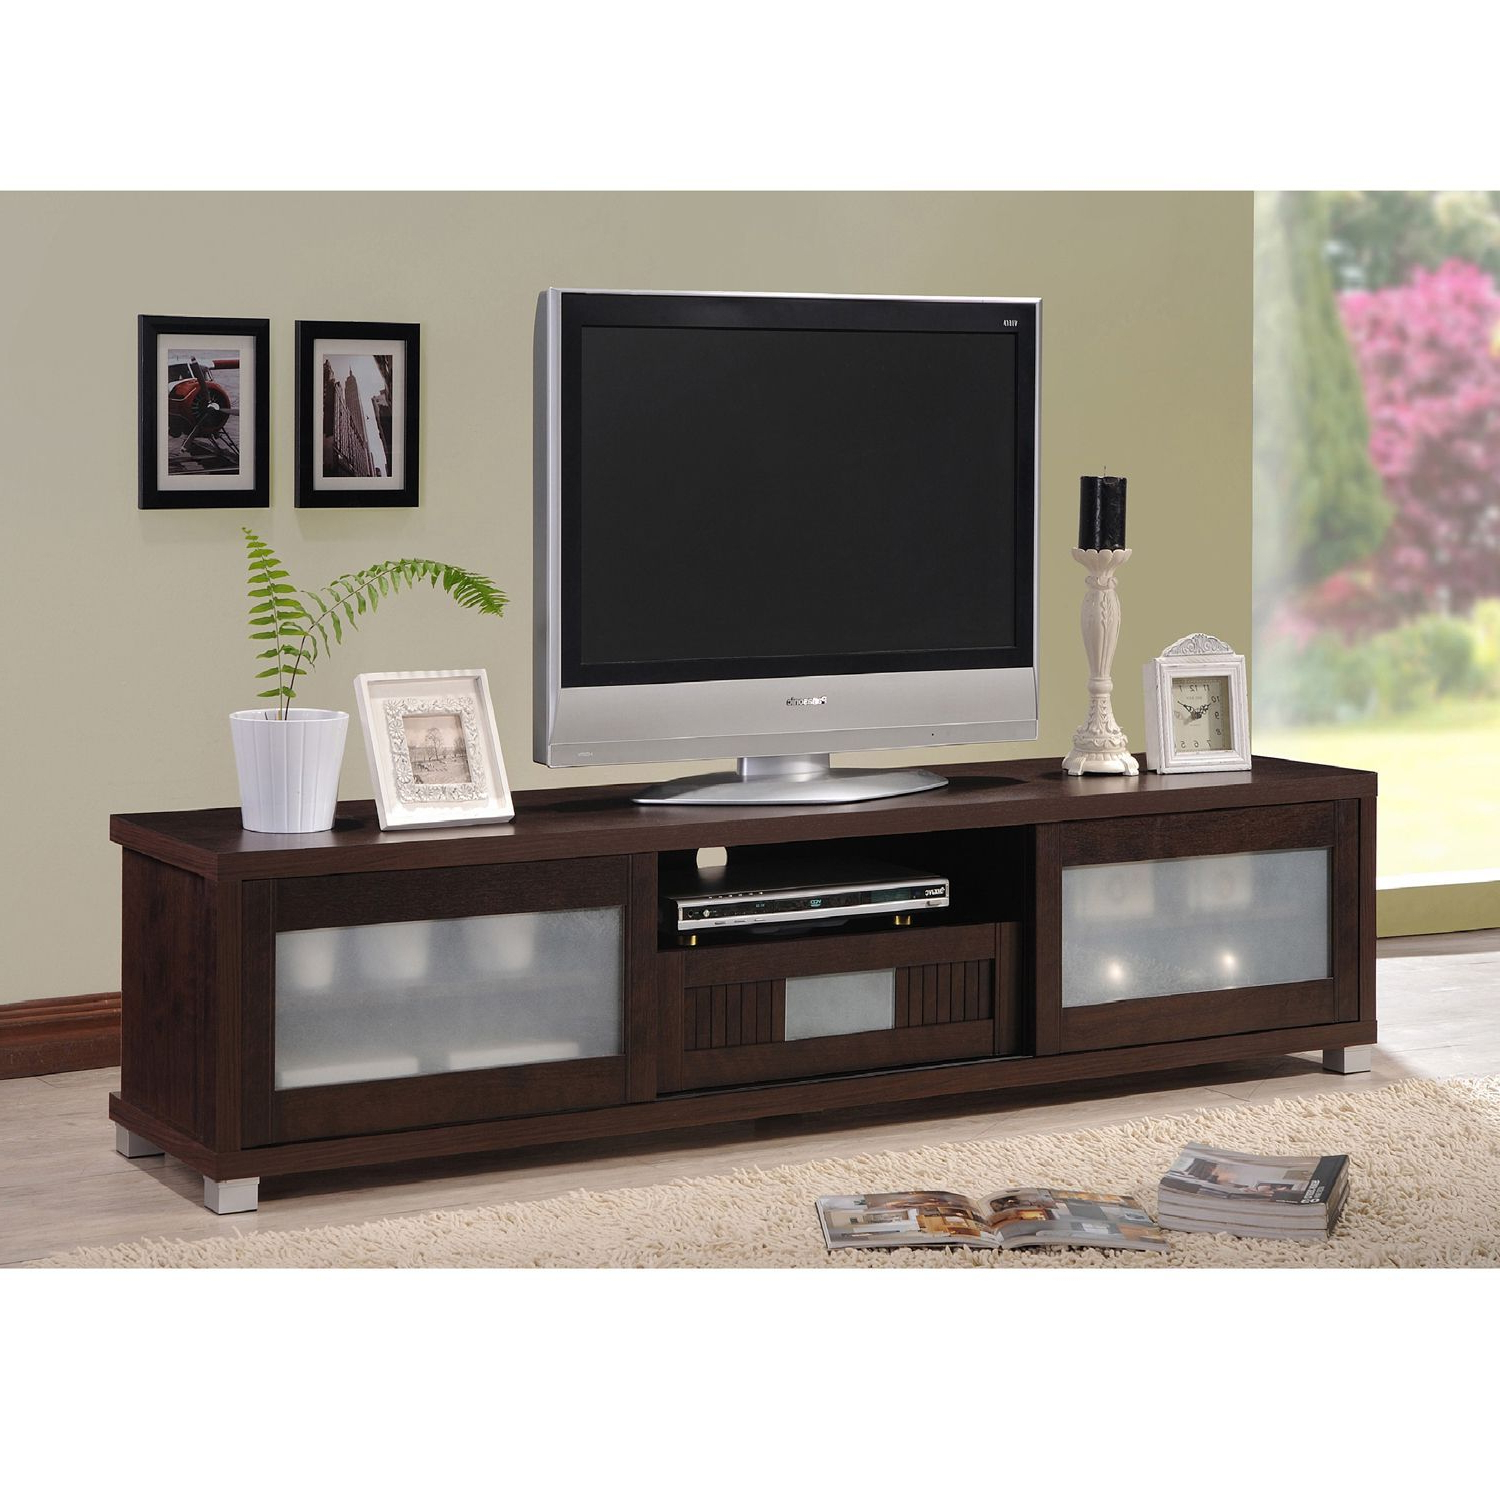 Famous Captivating We Furniture 52 Inch Wood Console Corner Tv Stand White Inside Dark Brown Corner Tv Stands (View 19 of 20)